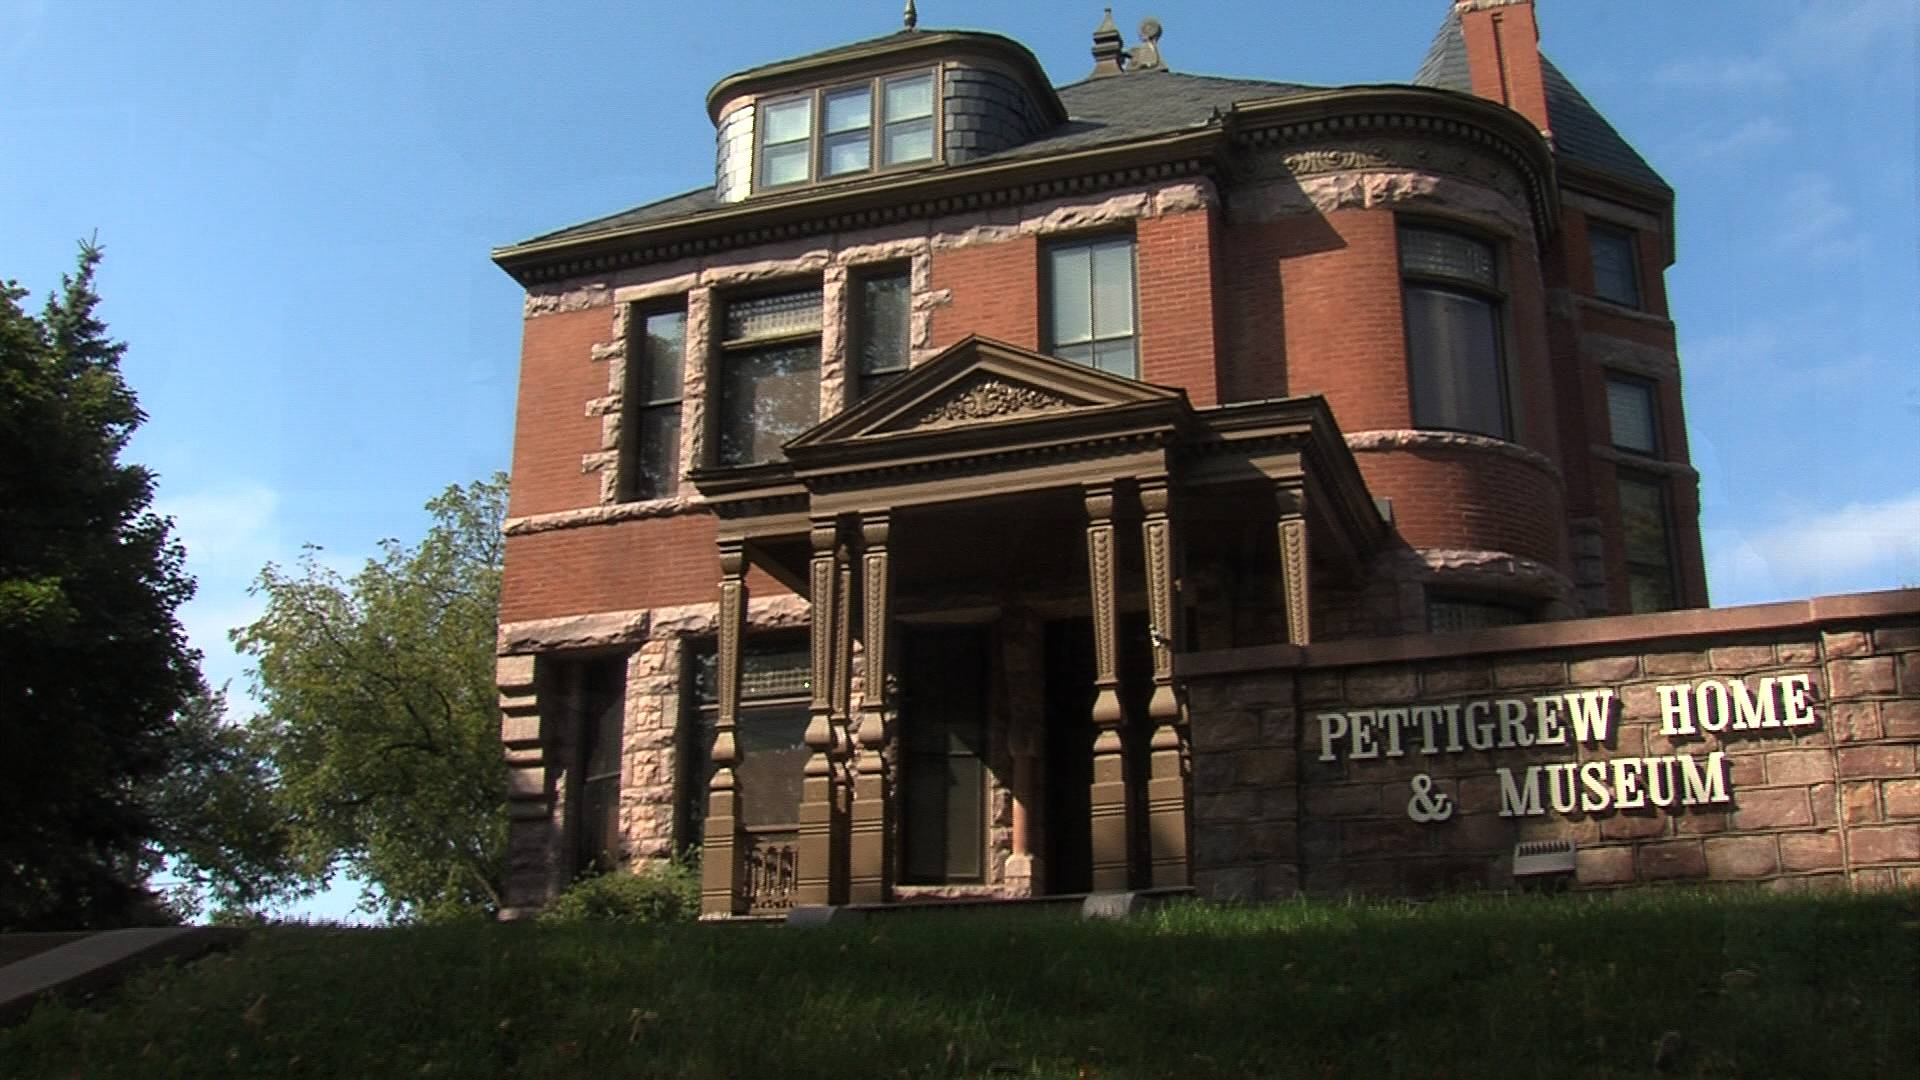 The Pettigrew Museum at 8th and Duluth in Sioux Falls